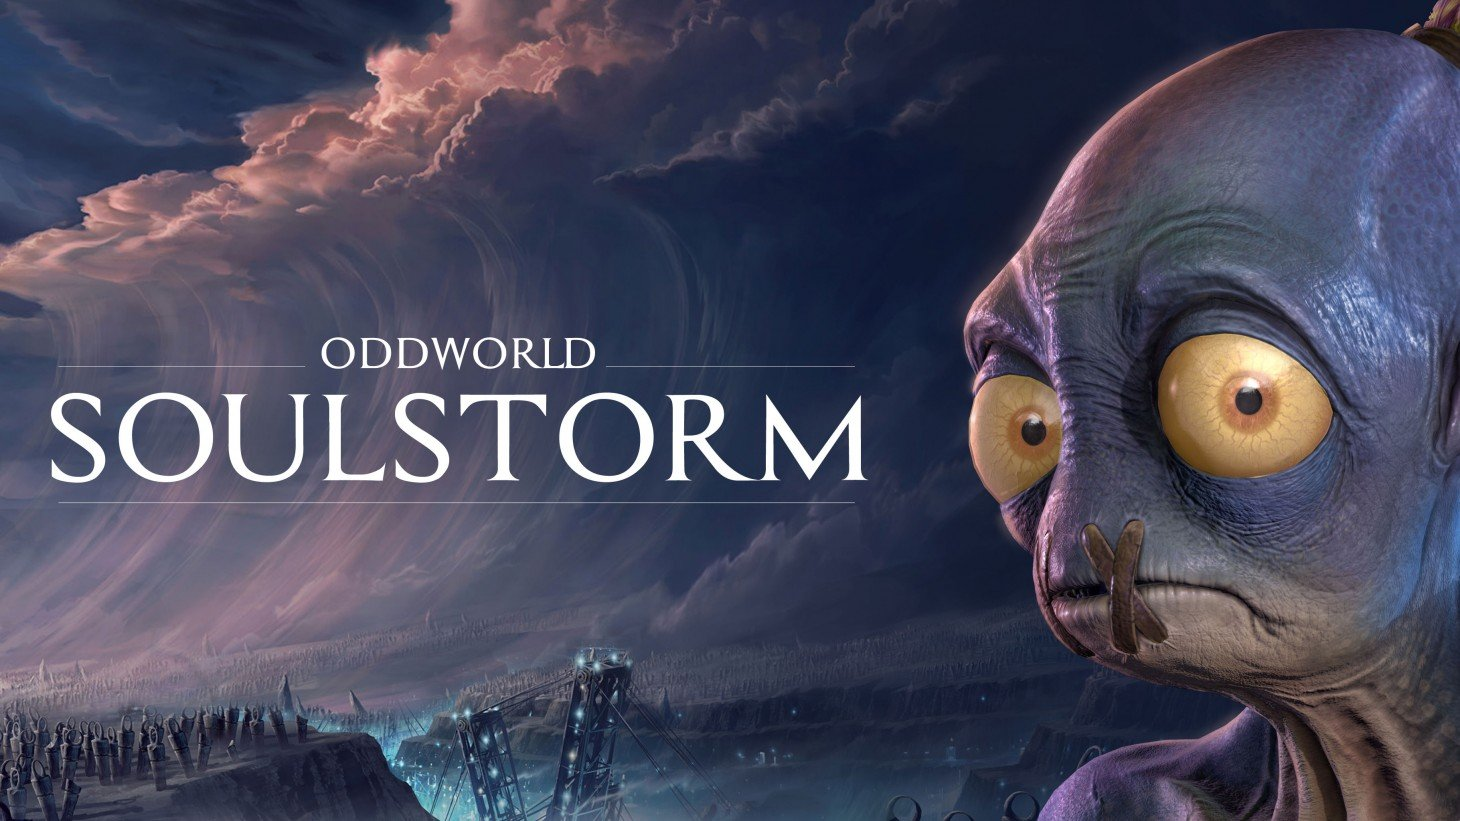 Oddworld Soulstorm is coming to PS5